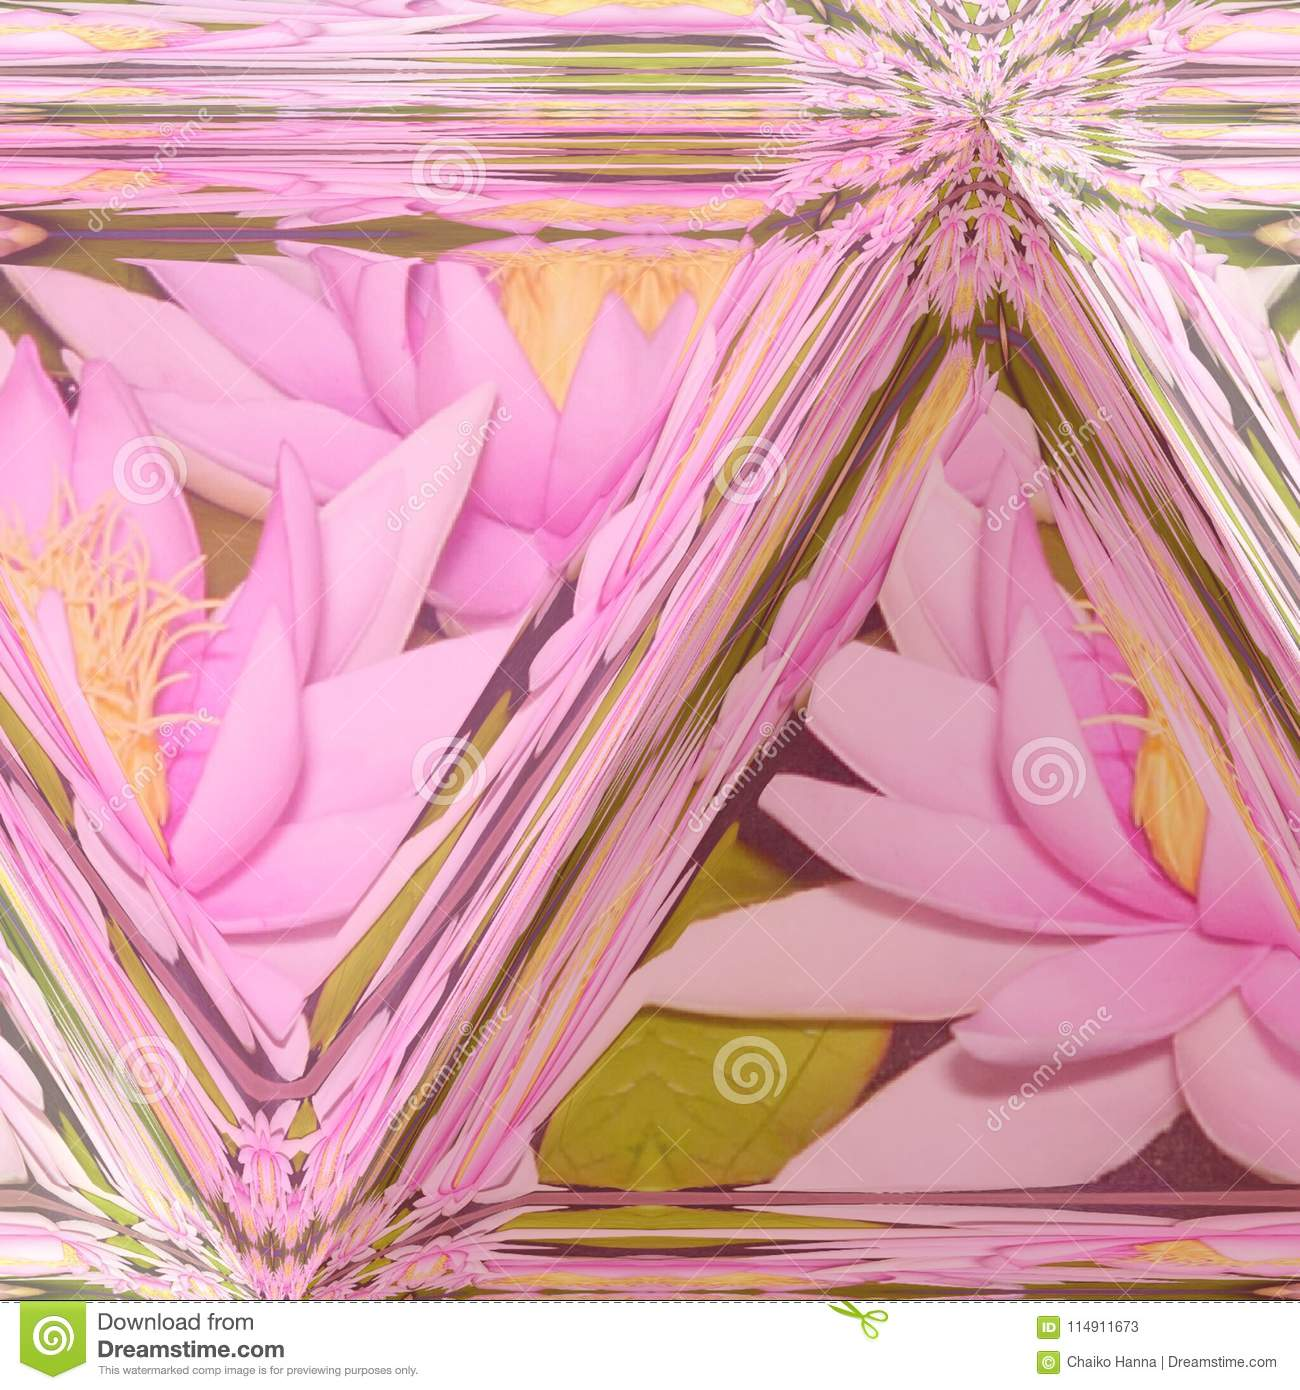 Lotus Flower Illustration And Stained Glass Background In Pastel